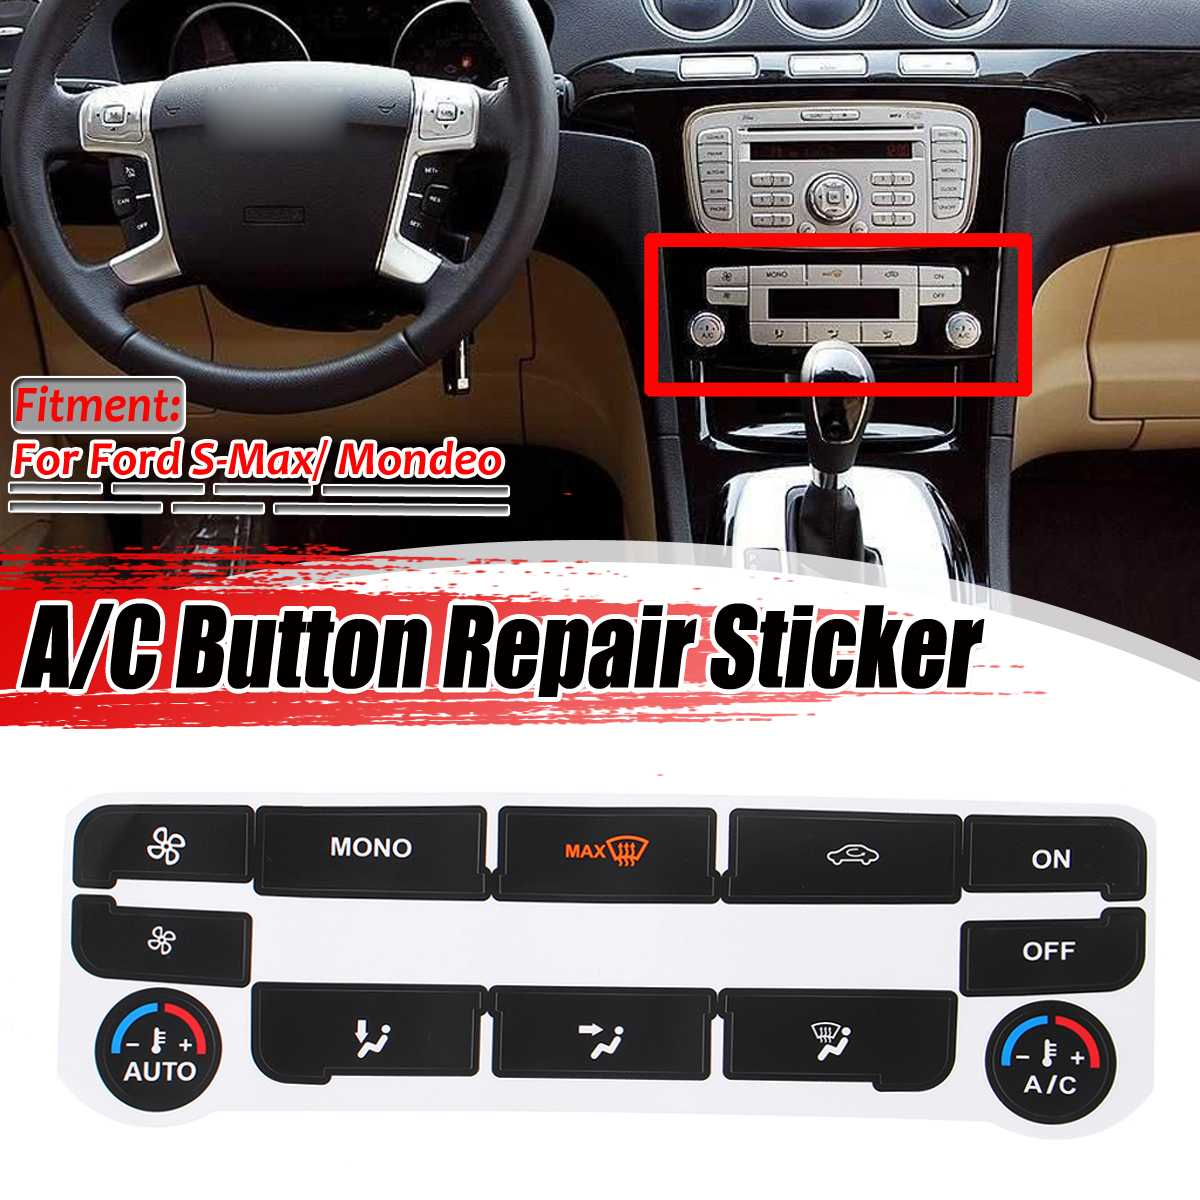 Matte Black Car Air Condition AC Climate Control Button Repair Sticker Decal For Ford S-Max/ For Mondeo Fix Ugly Button